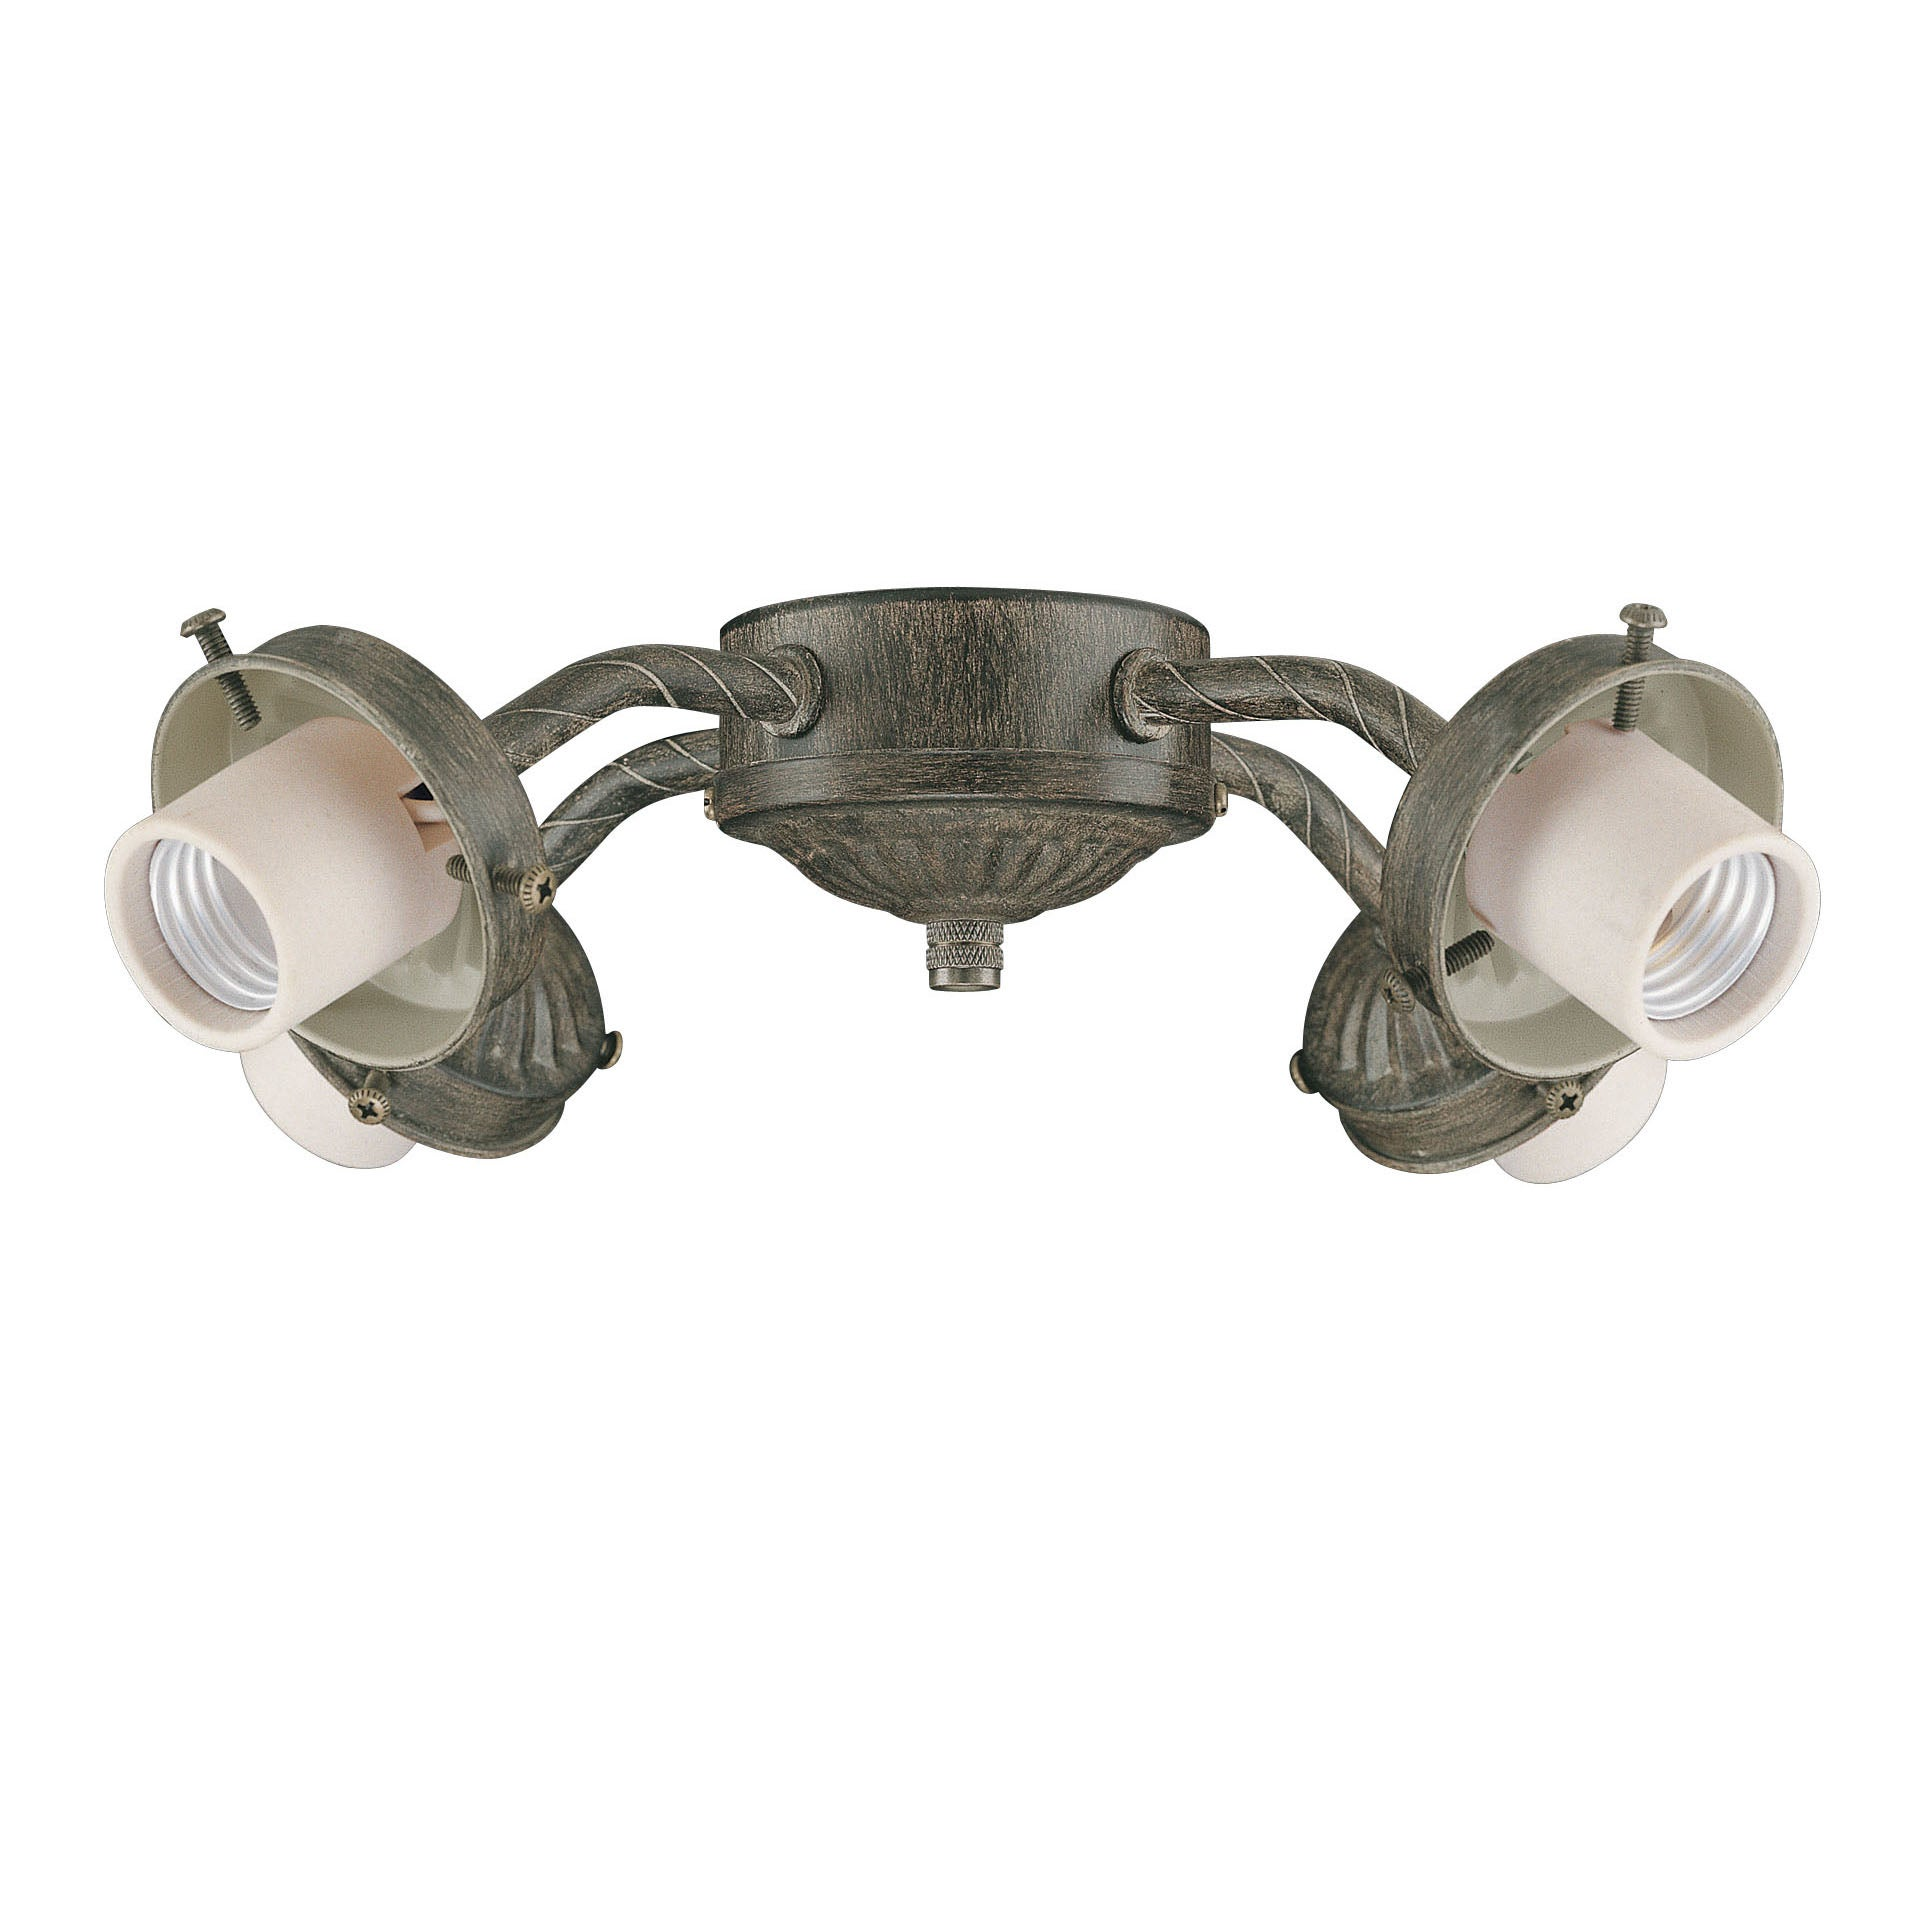 Four Light Aged Pecan Ceiling Fan Light Kit Free Shipping